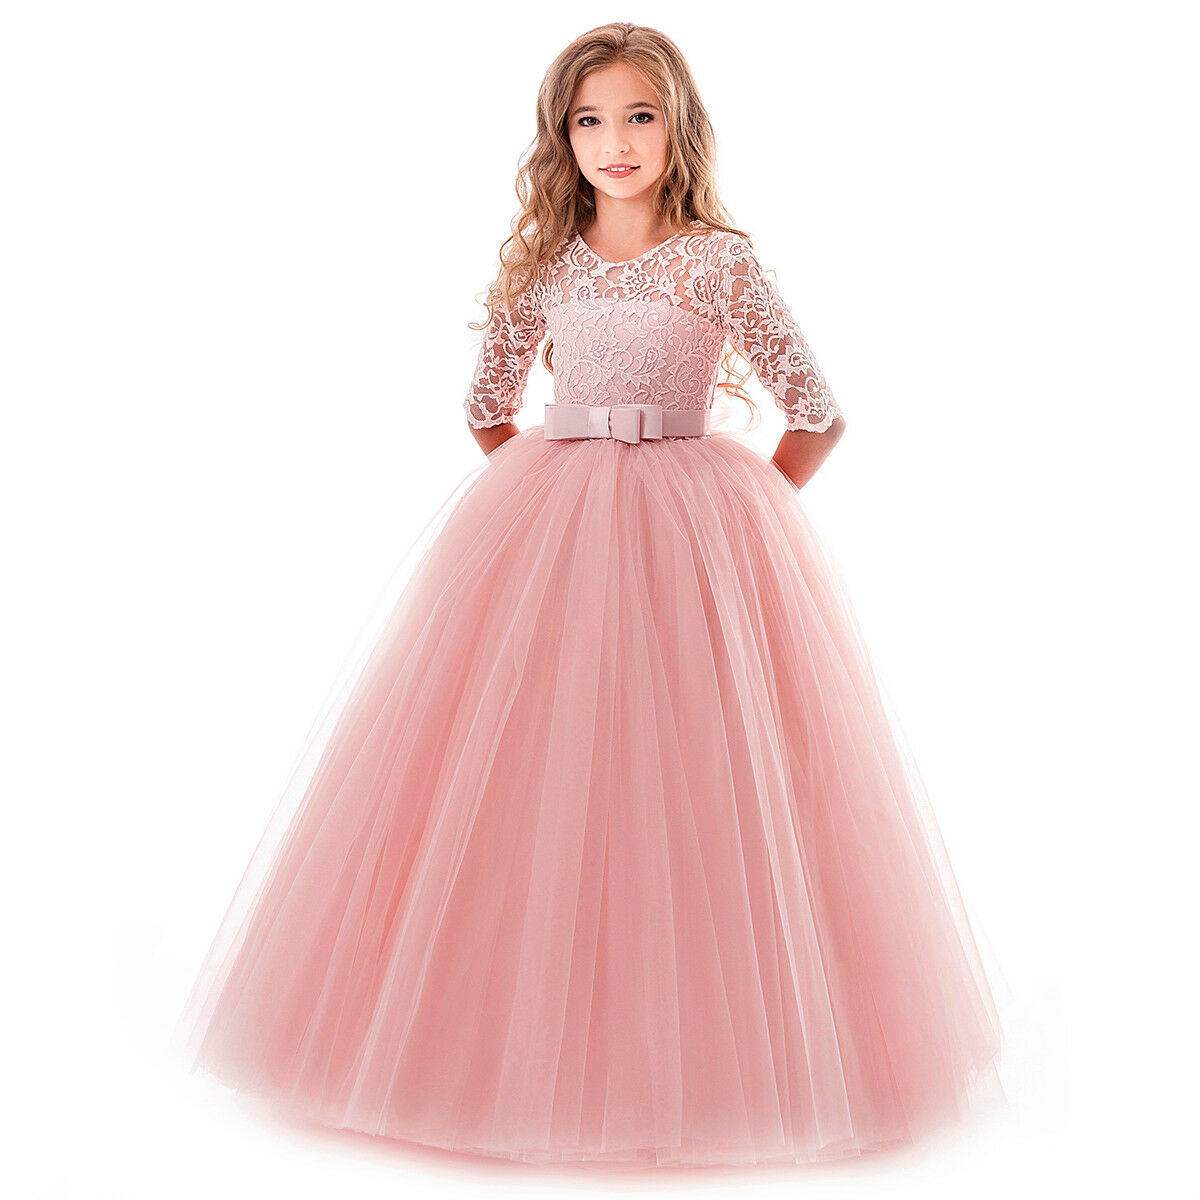 Children Gowns For Wedding: Kids Bridesmaid Lace Dress Wedding Party Long Princess